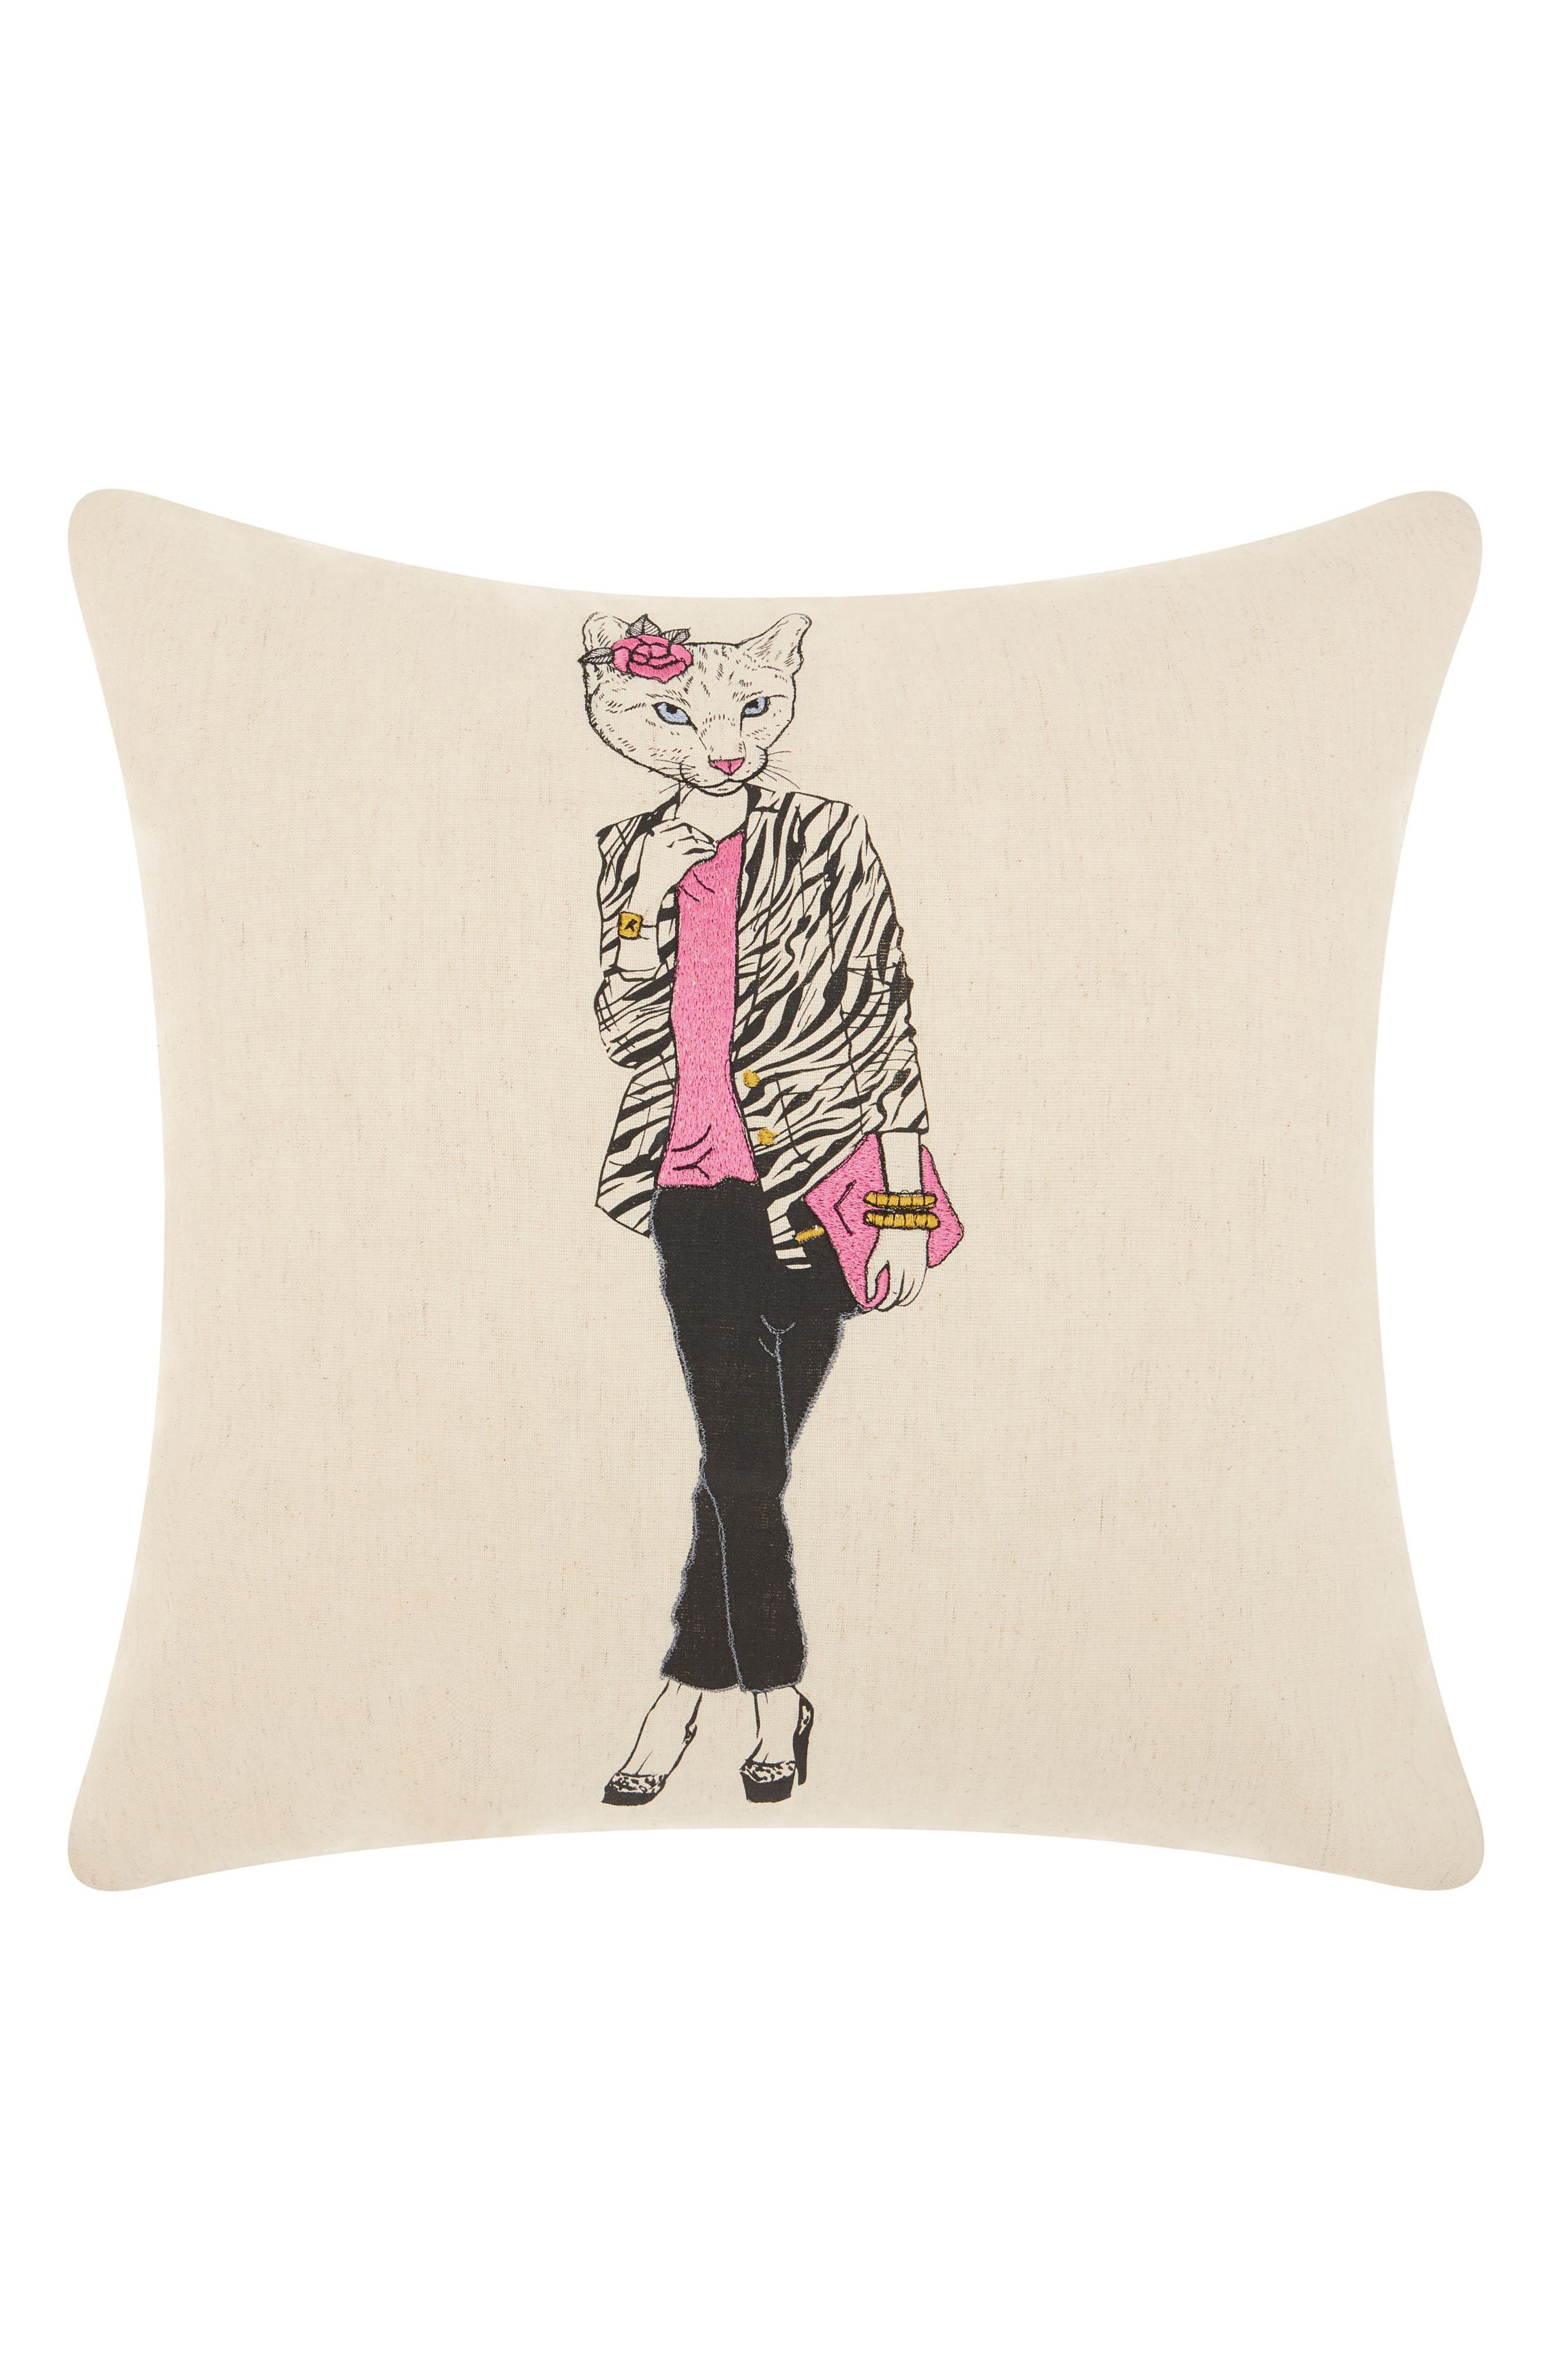 Classy Kitty Accent Pillow,                             Main thumbnail 1, color,                             250